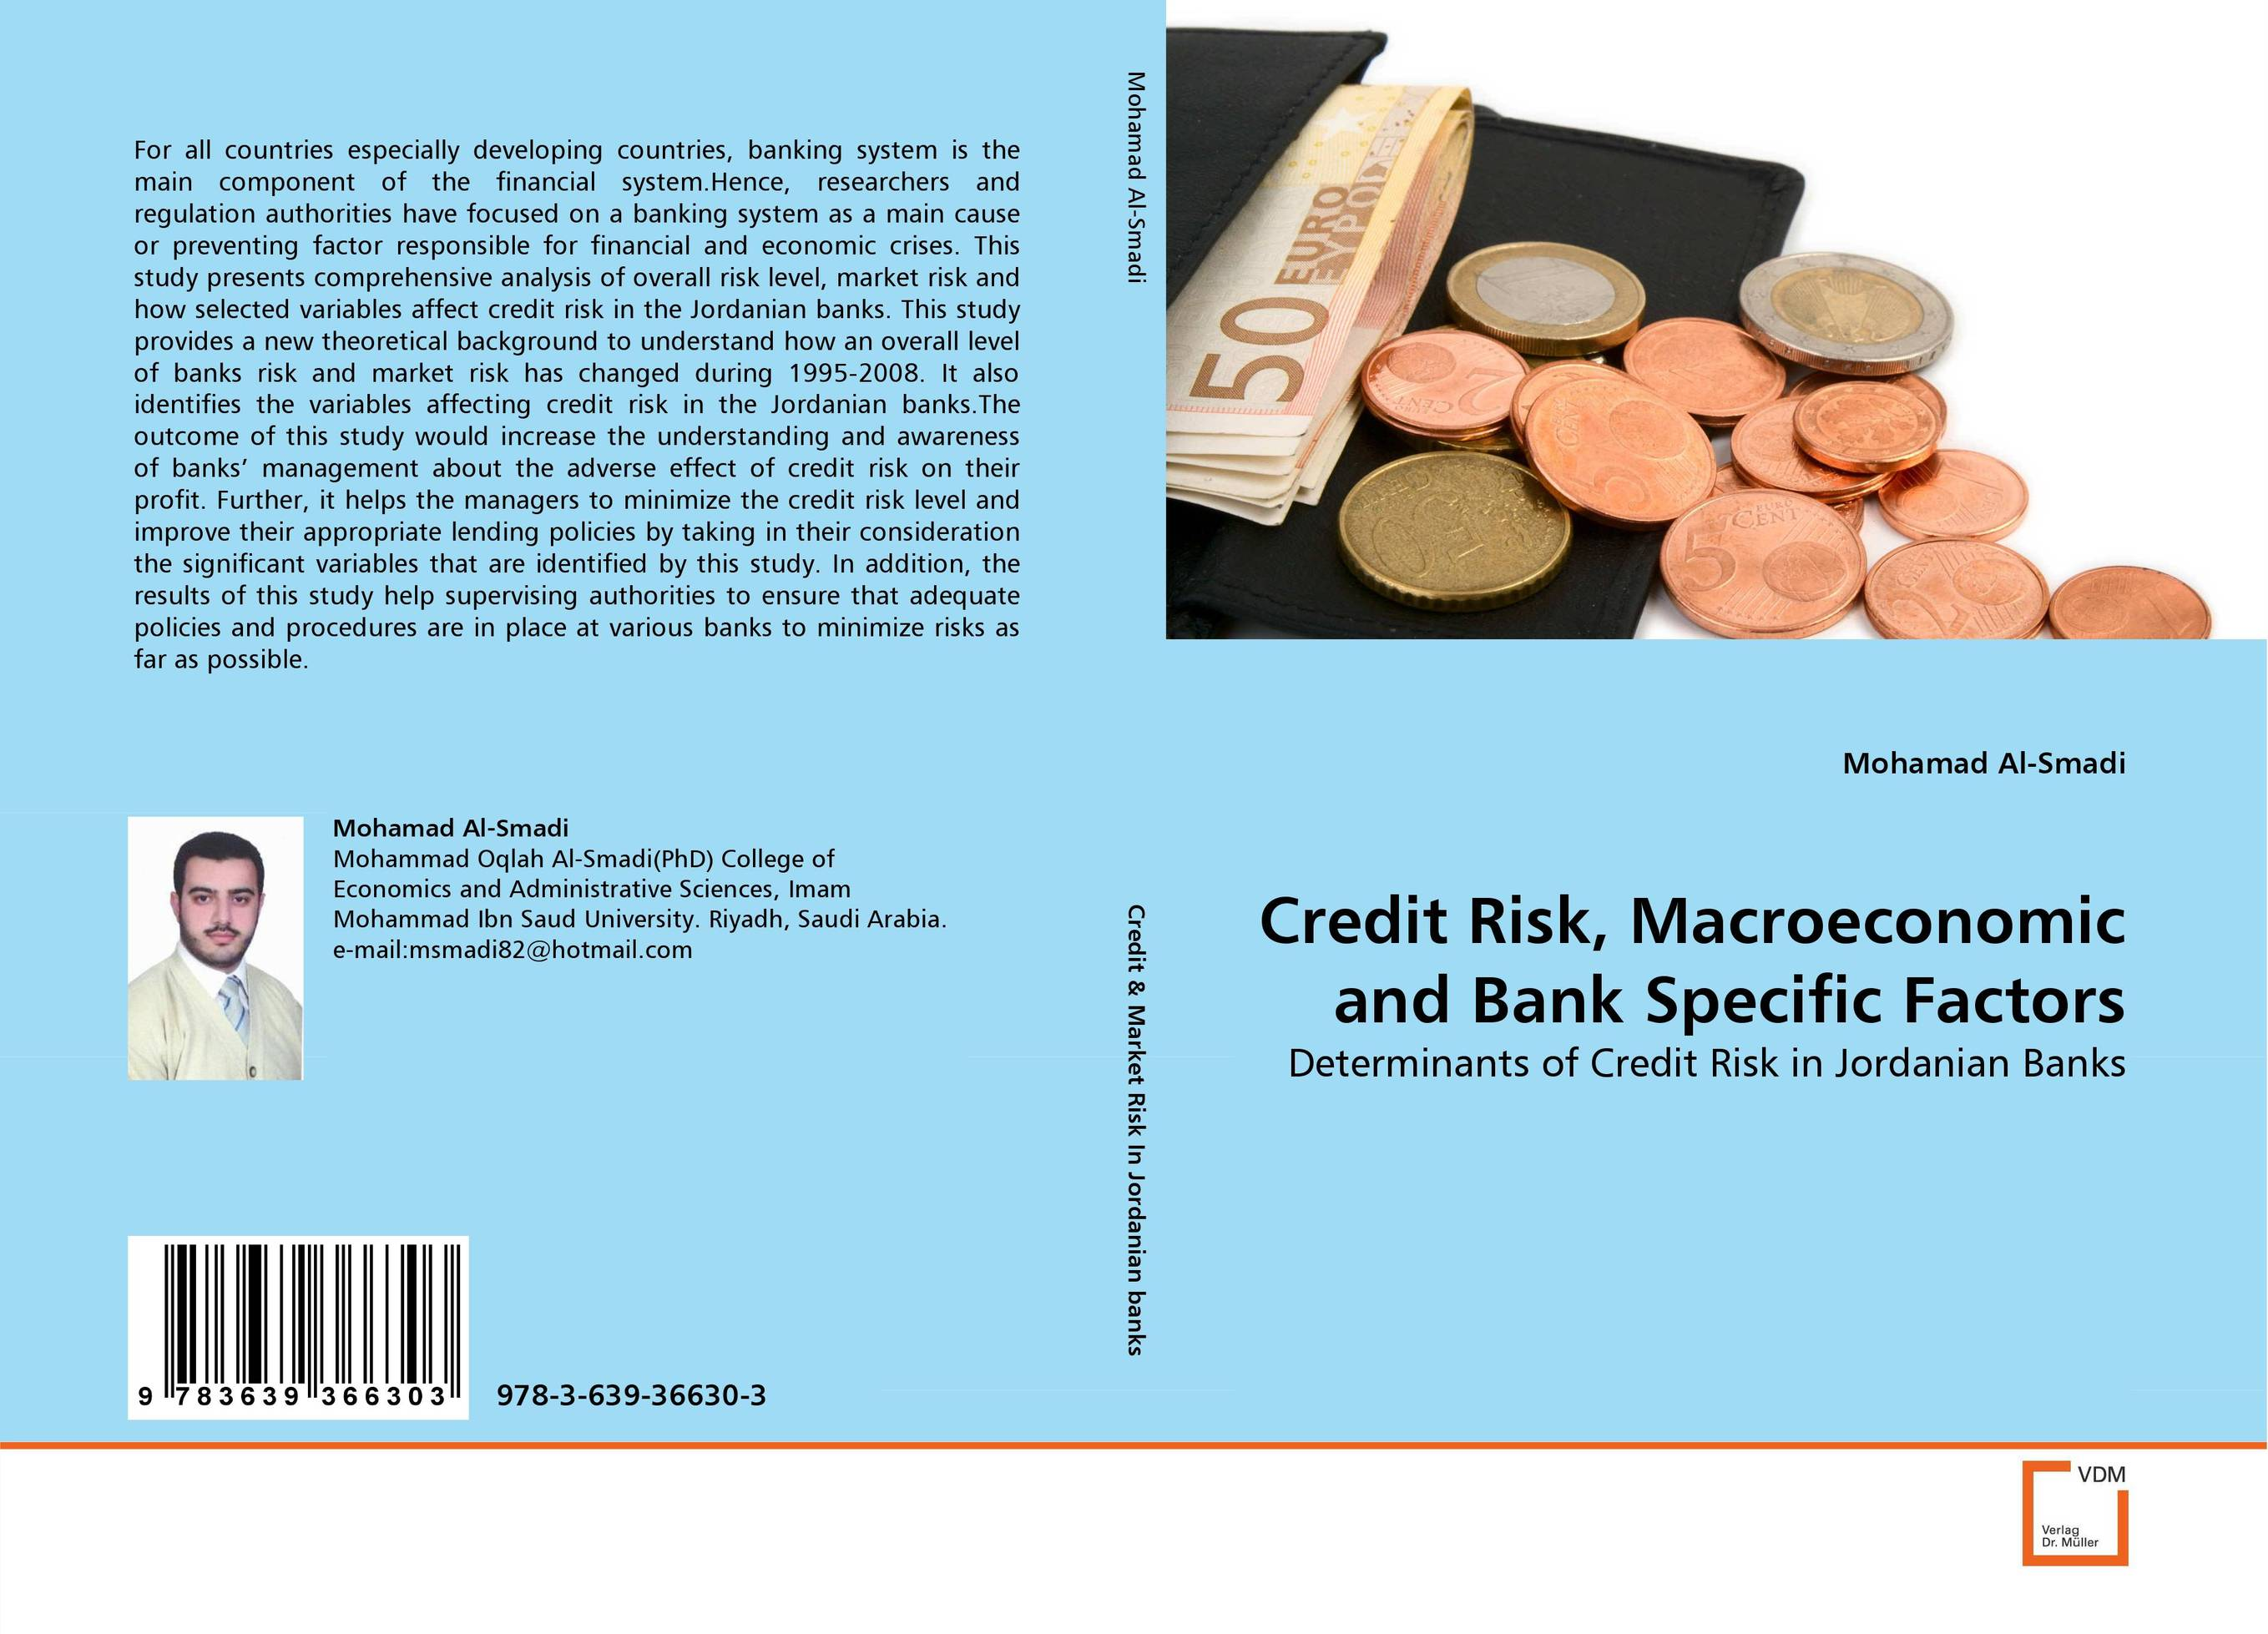 Credit Risk, Macroeconomic and Bank Specific Factors christian szylar handbook of market risk